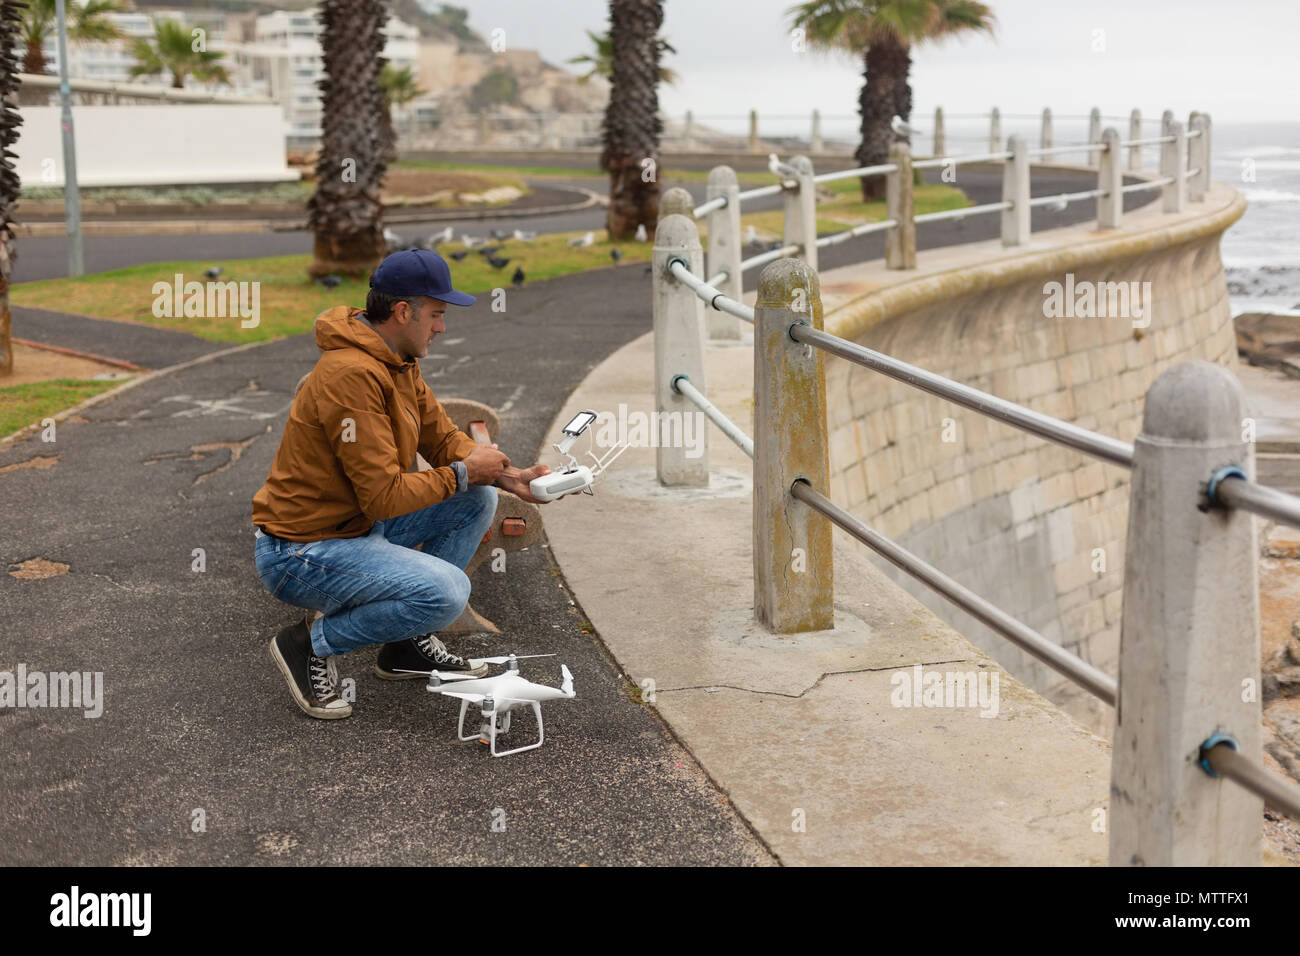 Man operating a flying drone Stock Photo